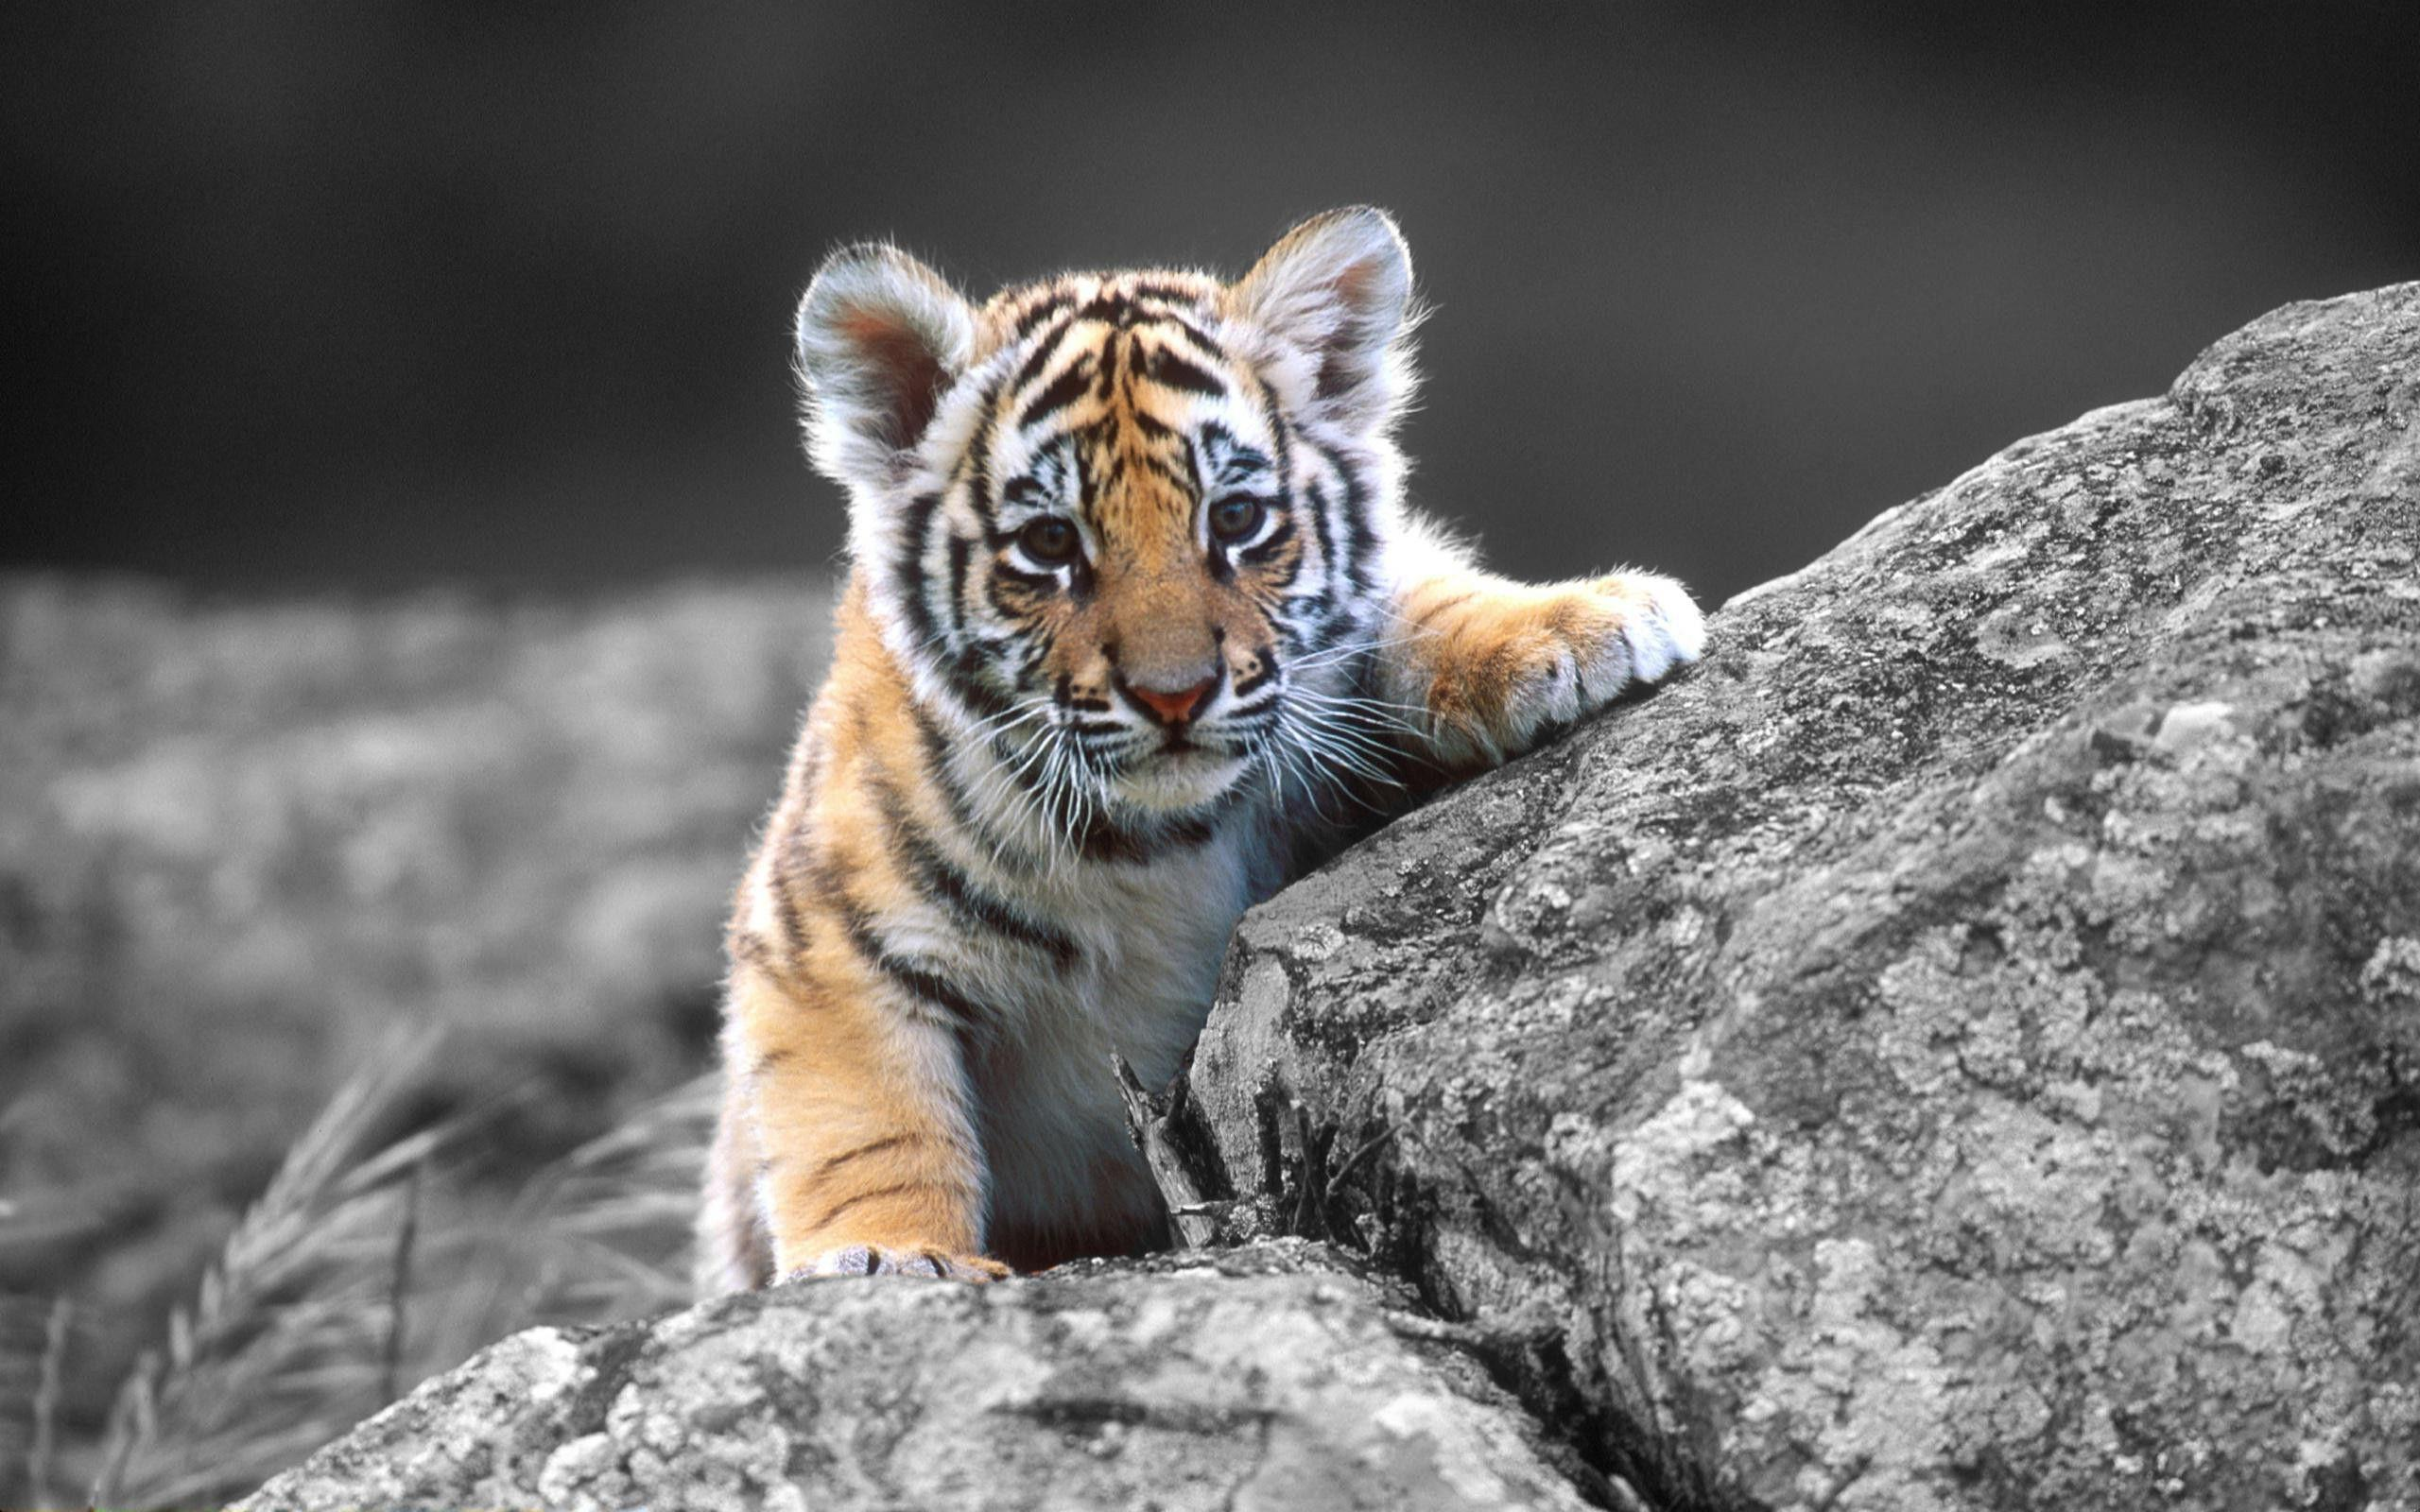 Beautiful Baby Tigers Wallpapers Www Topsimages Com